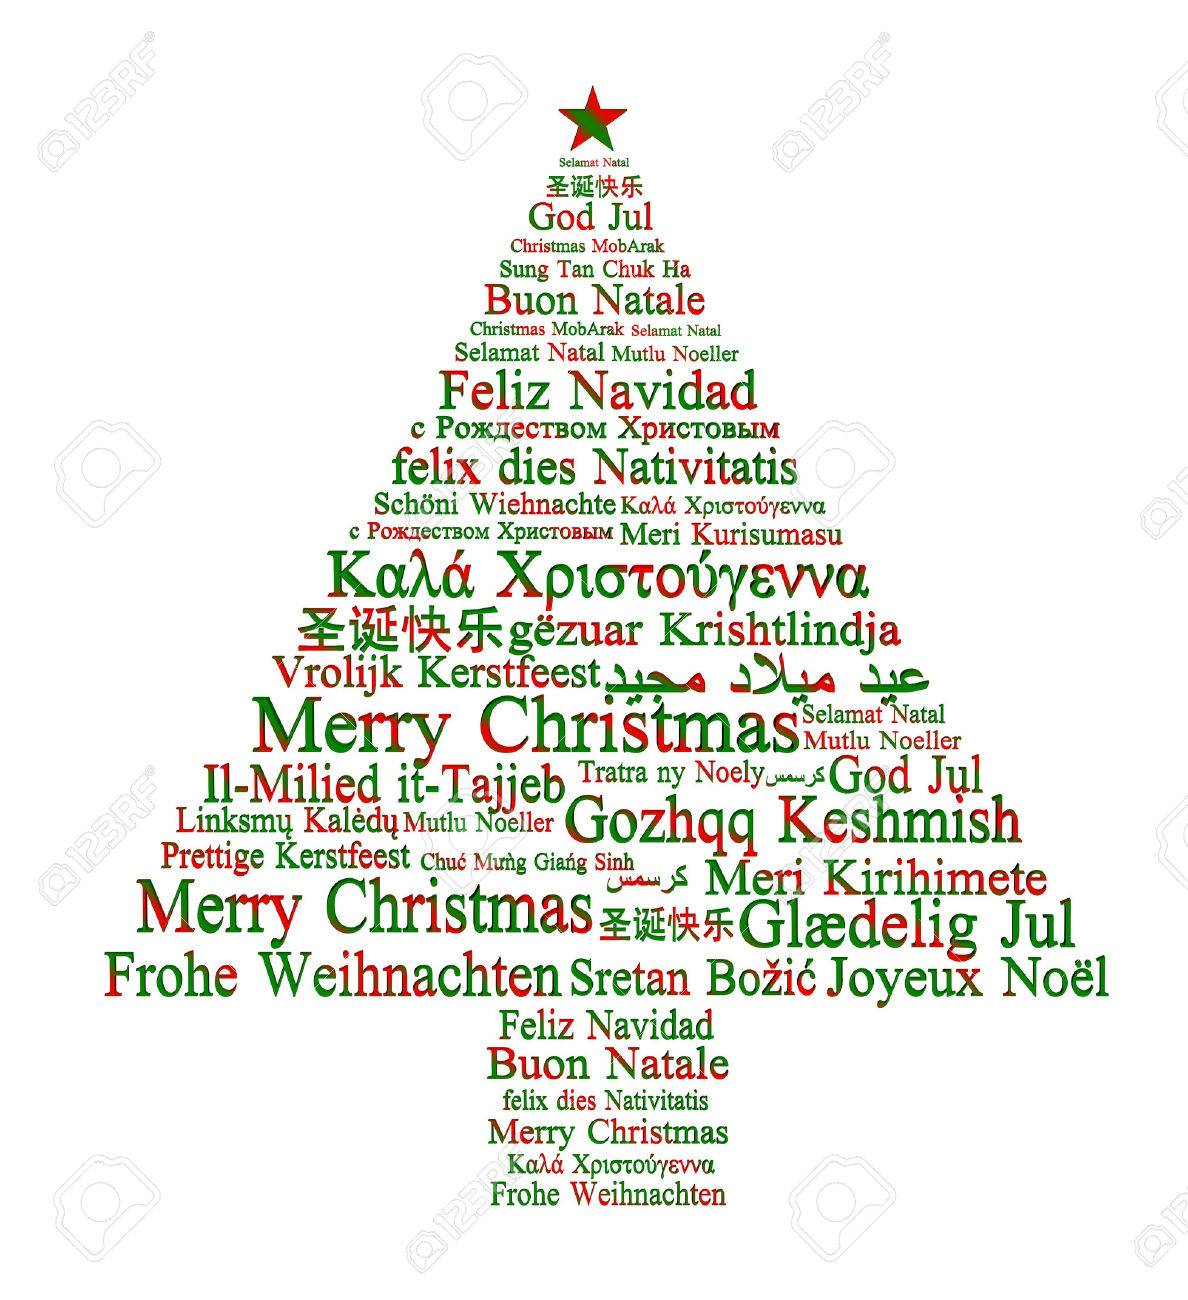 Merry Christmas In Different Languages Forming A Christmas Tree Stock  Photo, Picture And Royalty Free Image. Image 22291935.